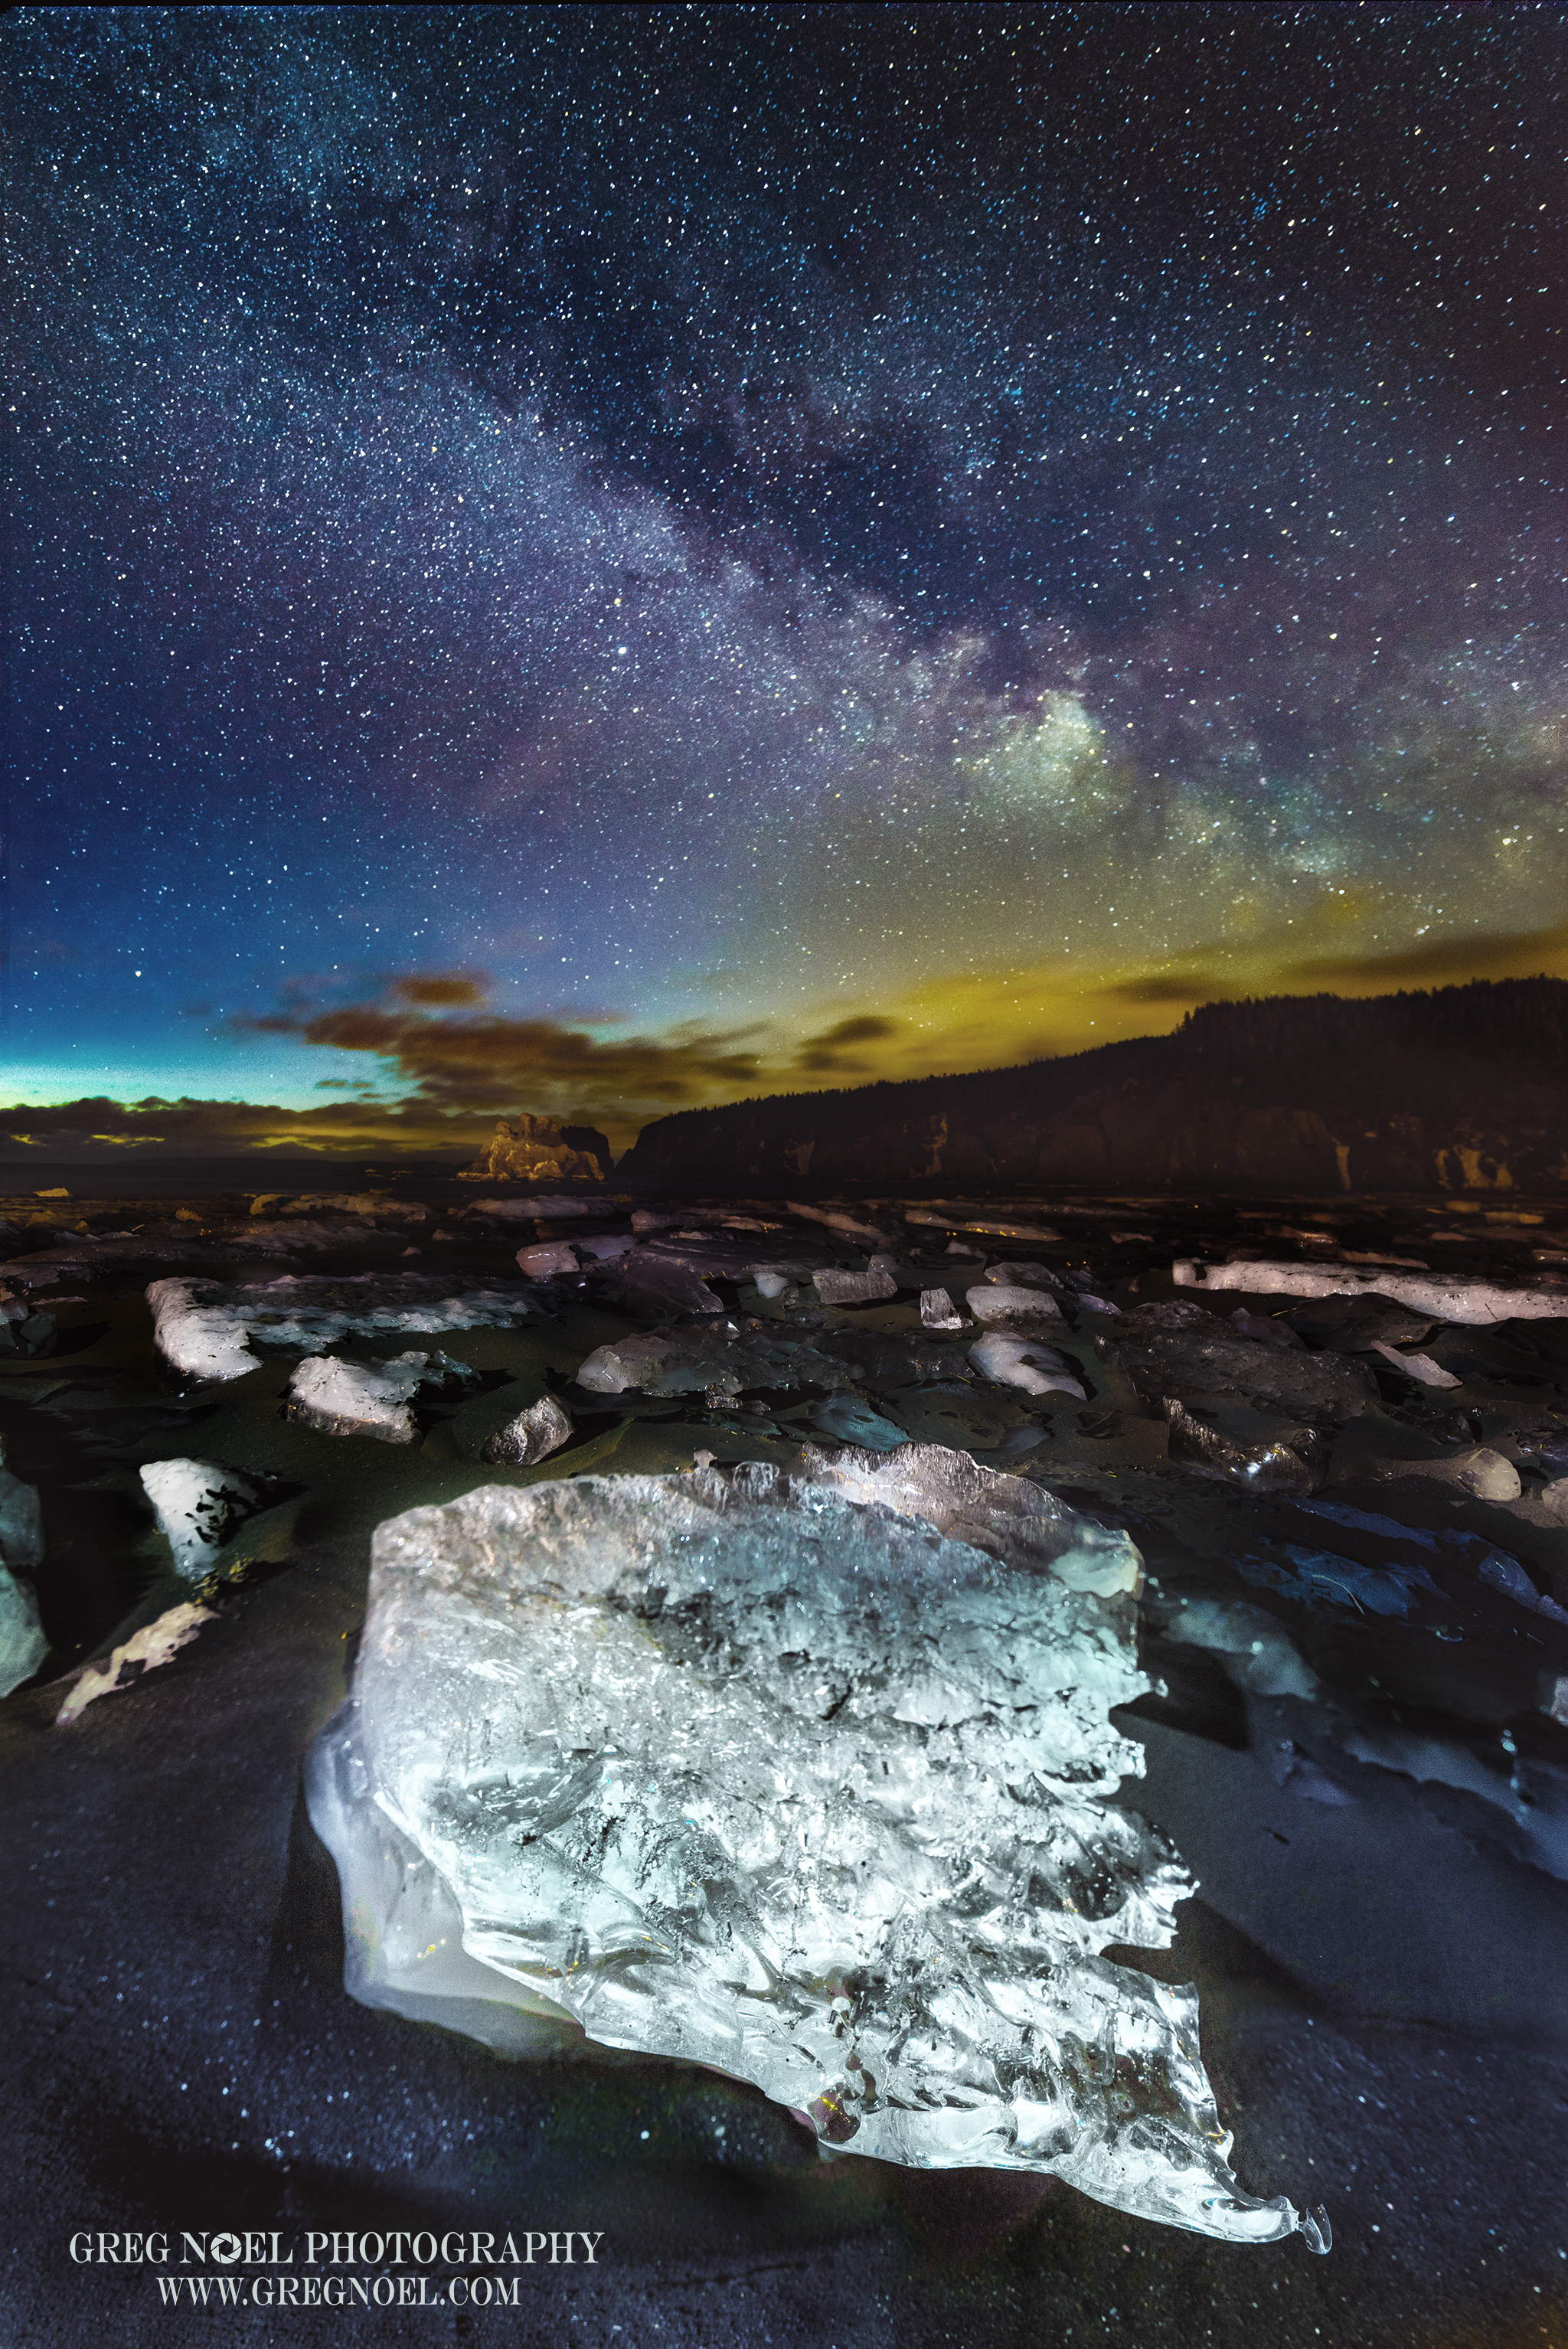 Salmon Cove Sands, Ice and the Milky Way